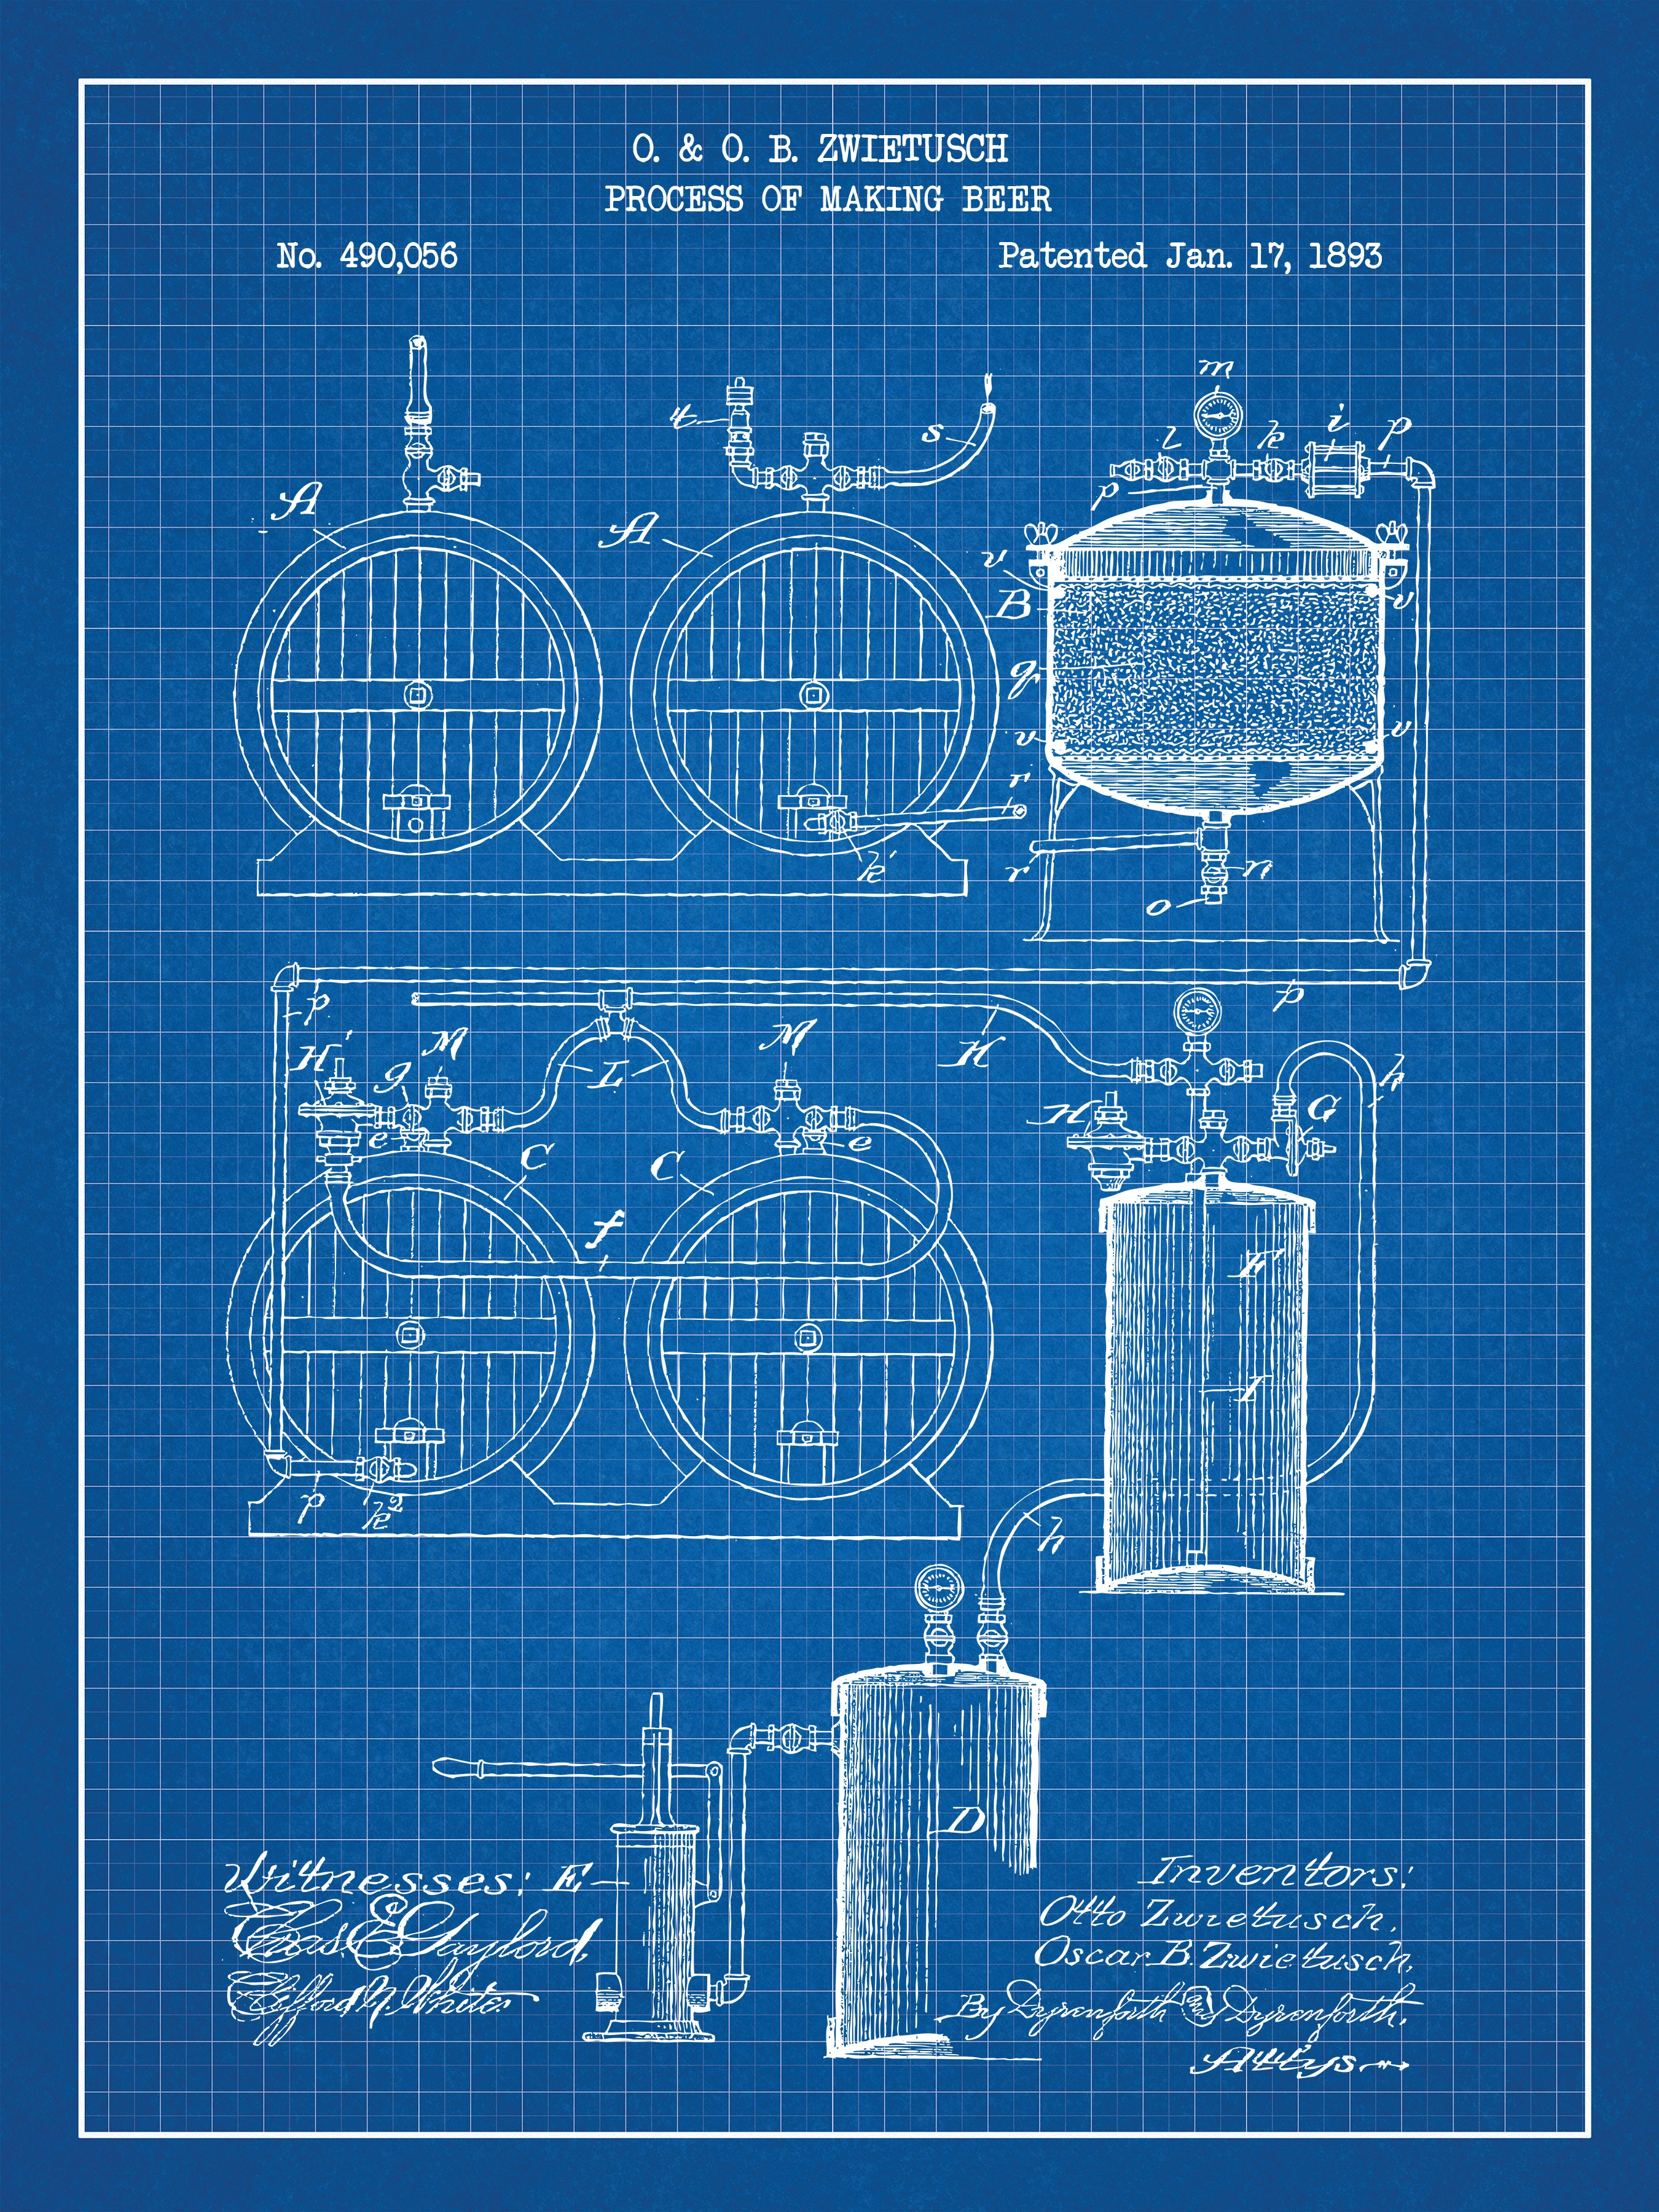 Process of Making Beer - 490,056